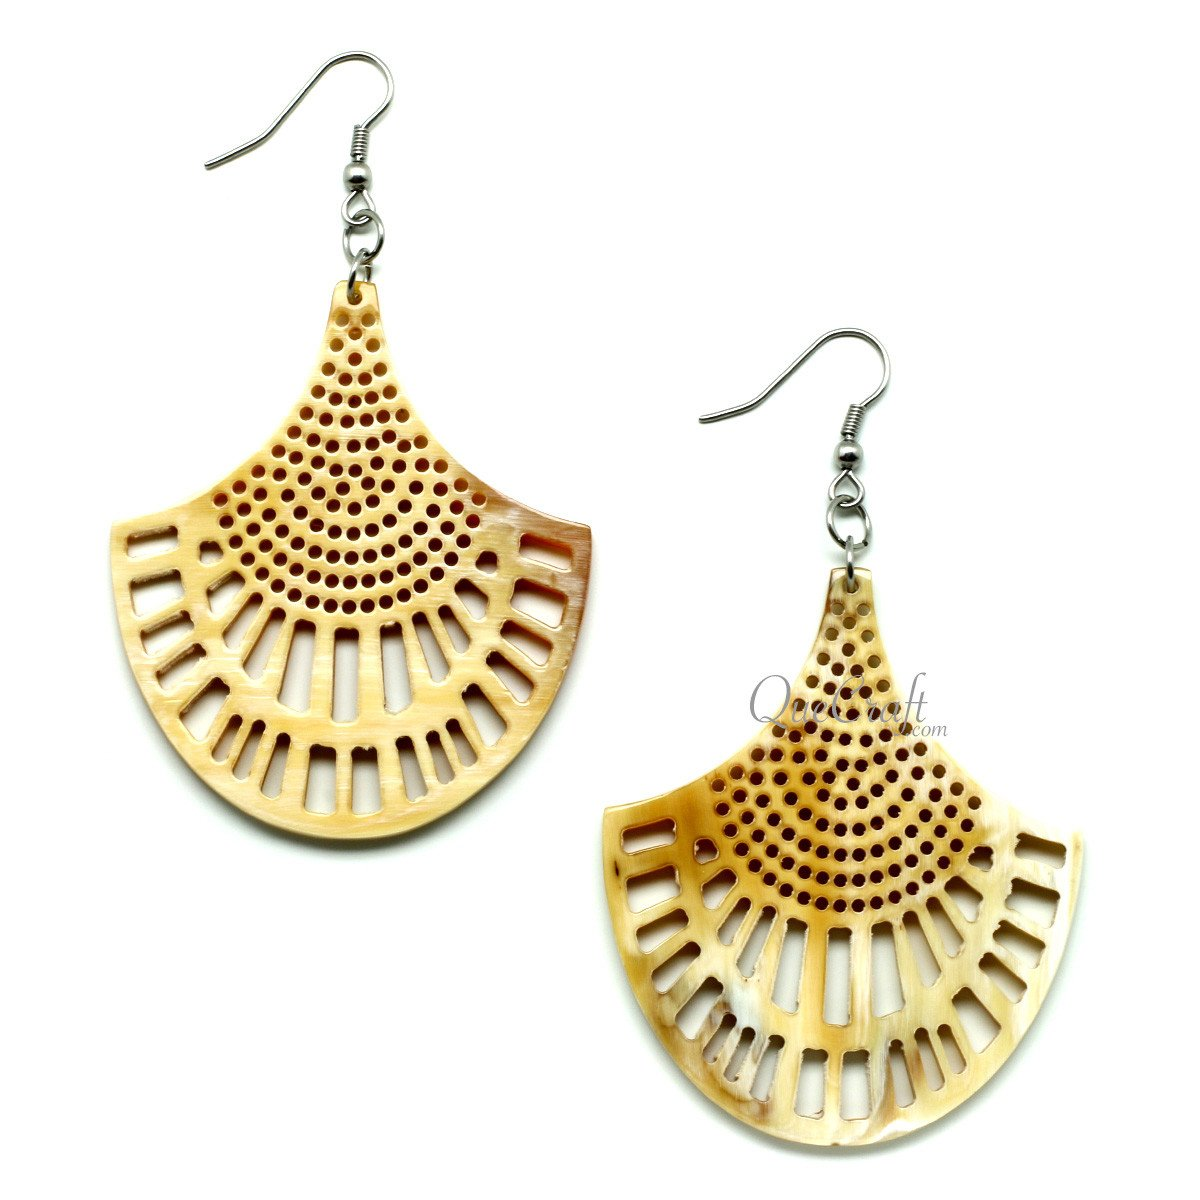 Horn Earrings #10460 - HORN.JEWELRY by QueCraft